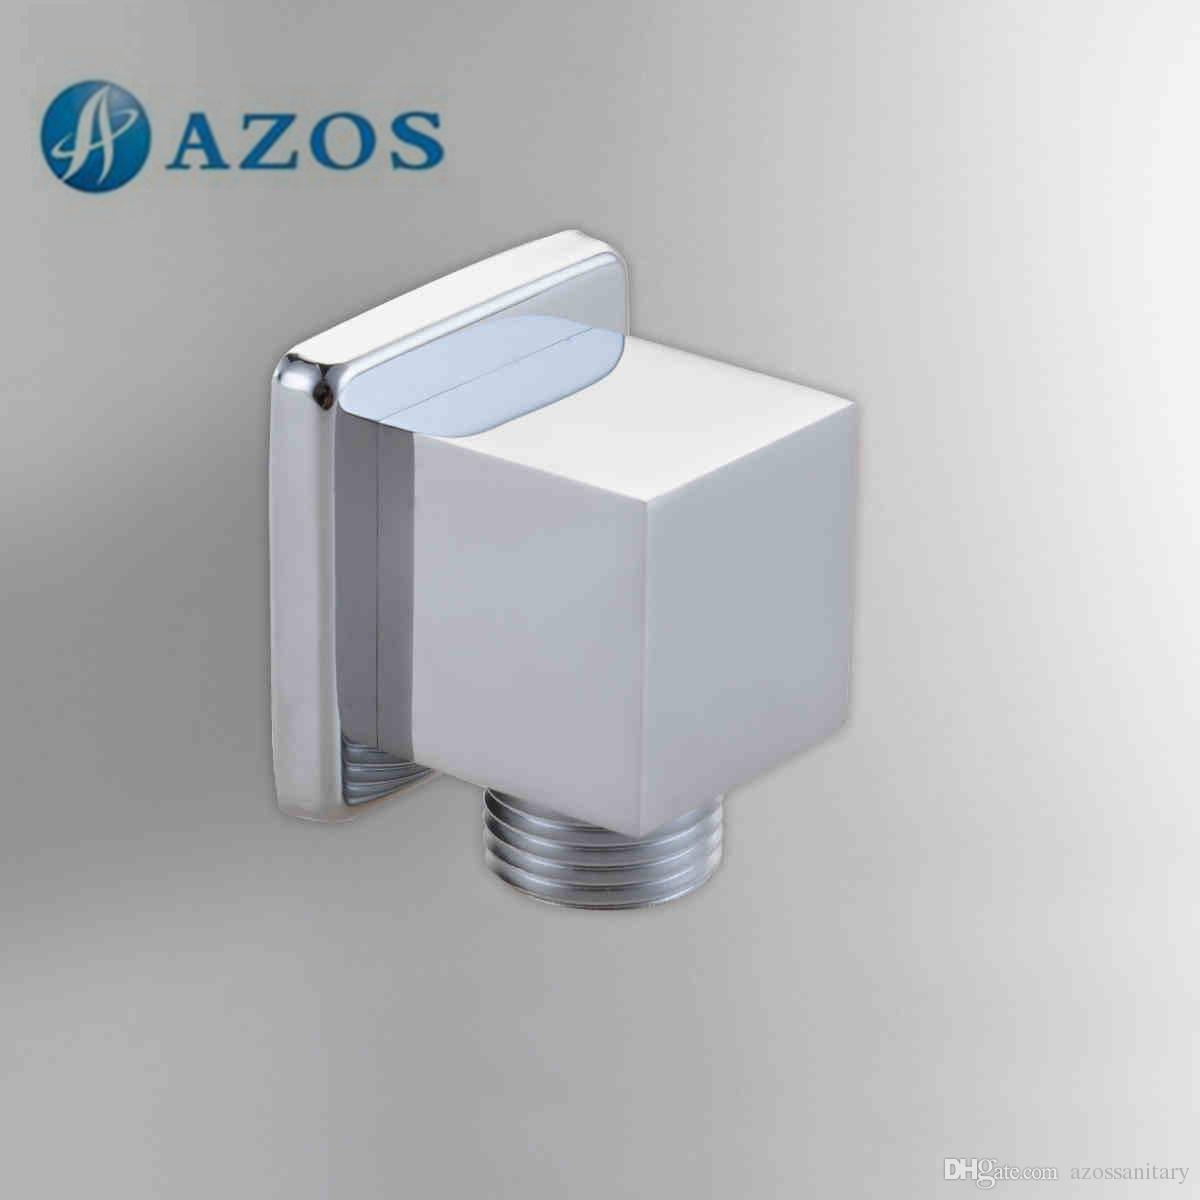 2018 azos hand held shower faucet connector solid brass chrome polish in wall outlet connection bathroom accessories toilet set azpj002 from azossanitary